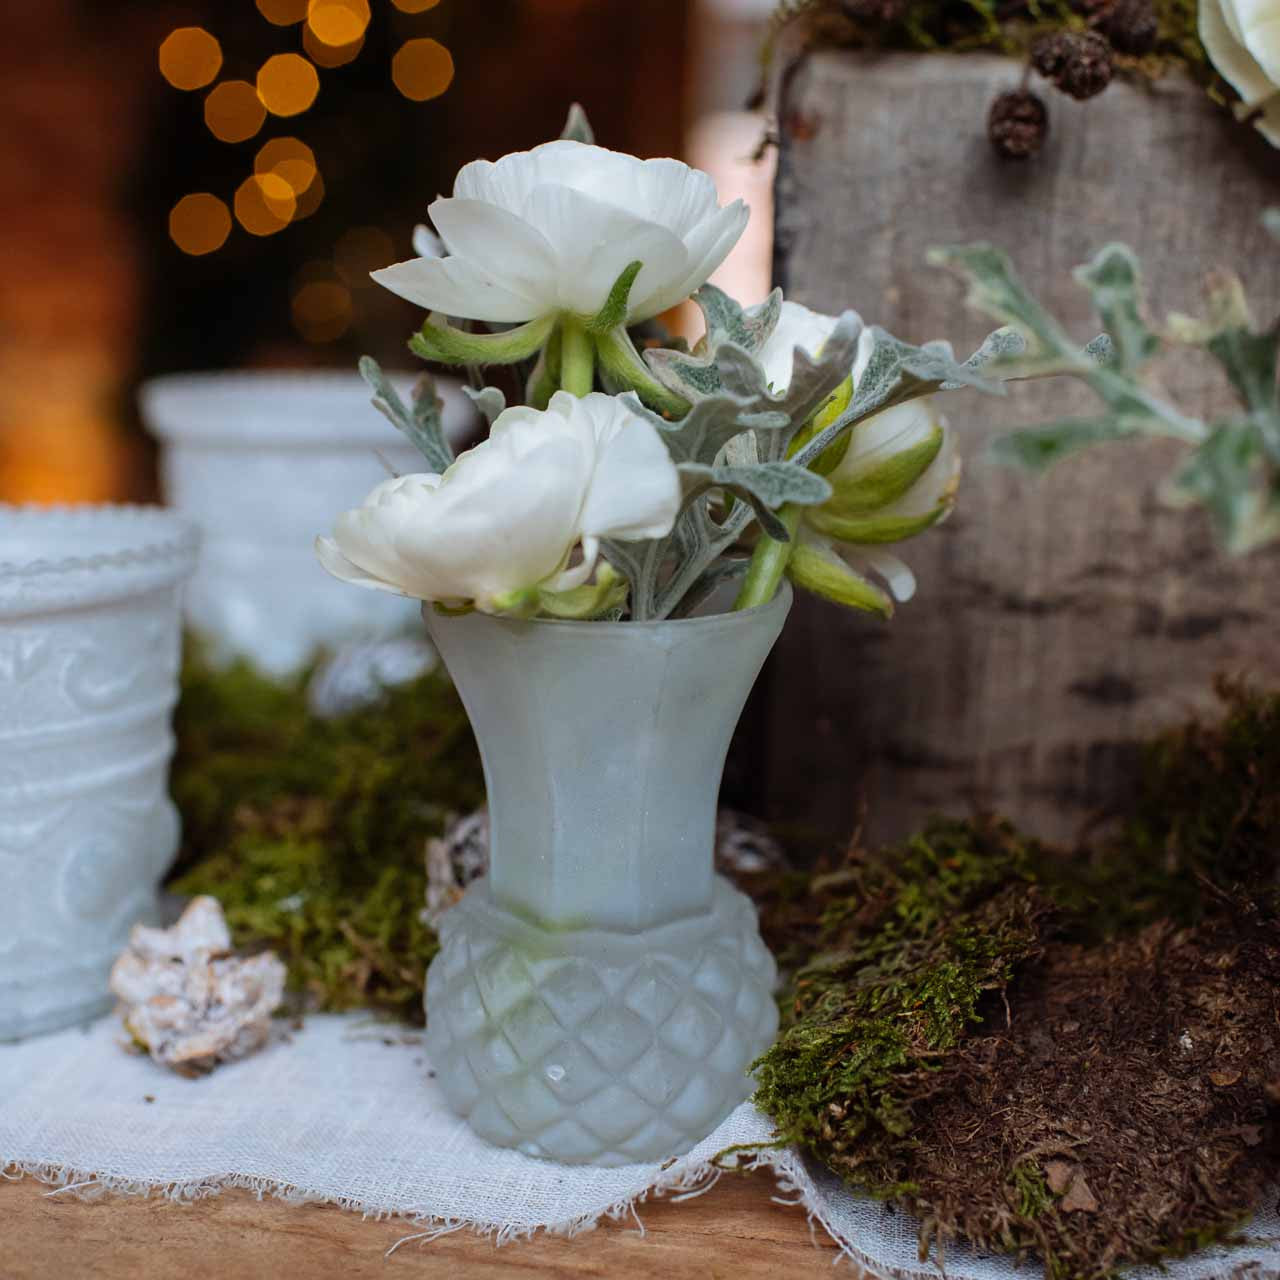 Frosted white glass bud vase the wedding of my dreams frosted white glass bud vase wedding table decorations reviewsmspy